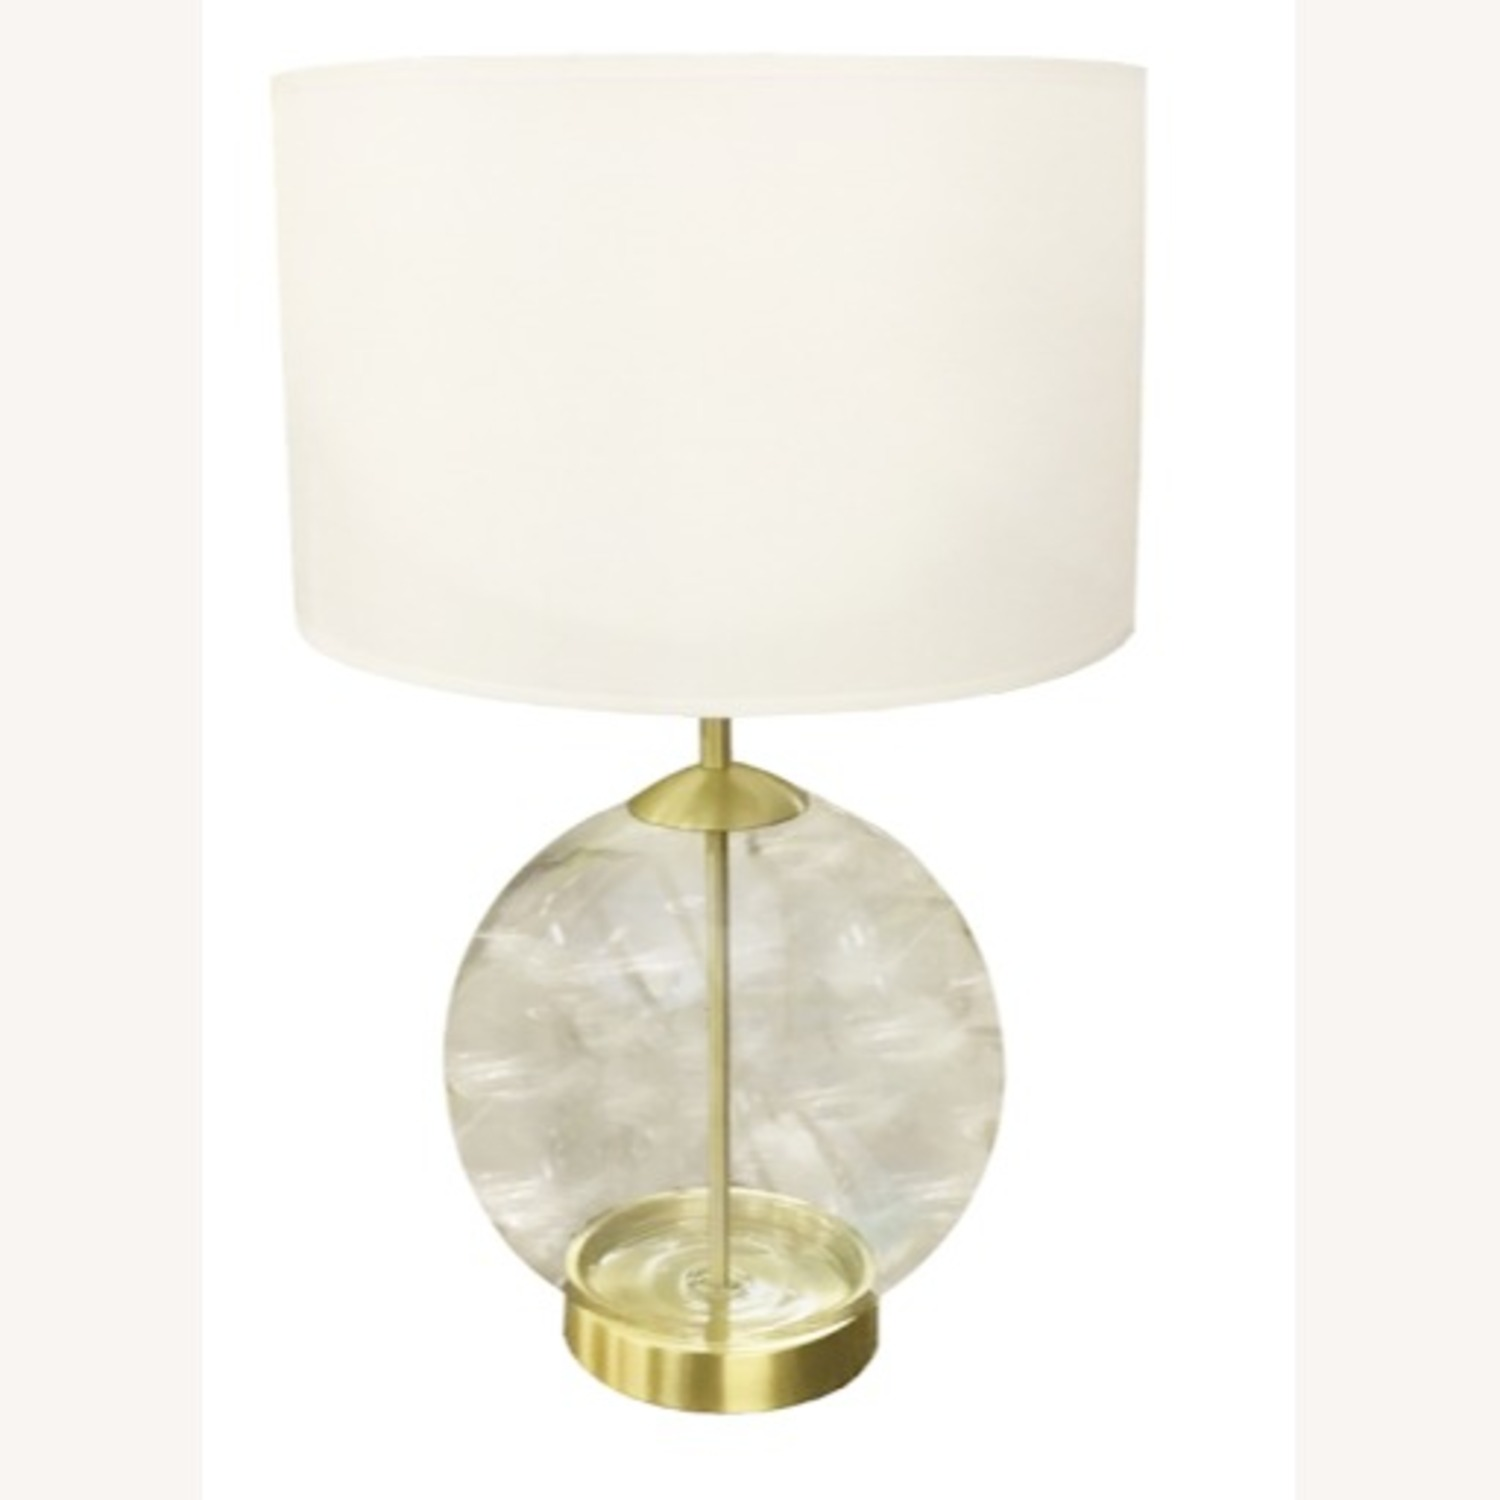 Blueground Sphere Table Lamp - image-1